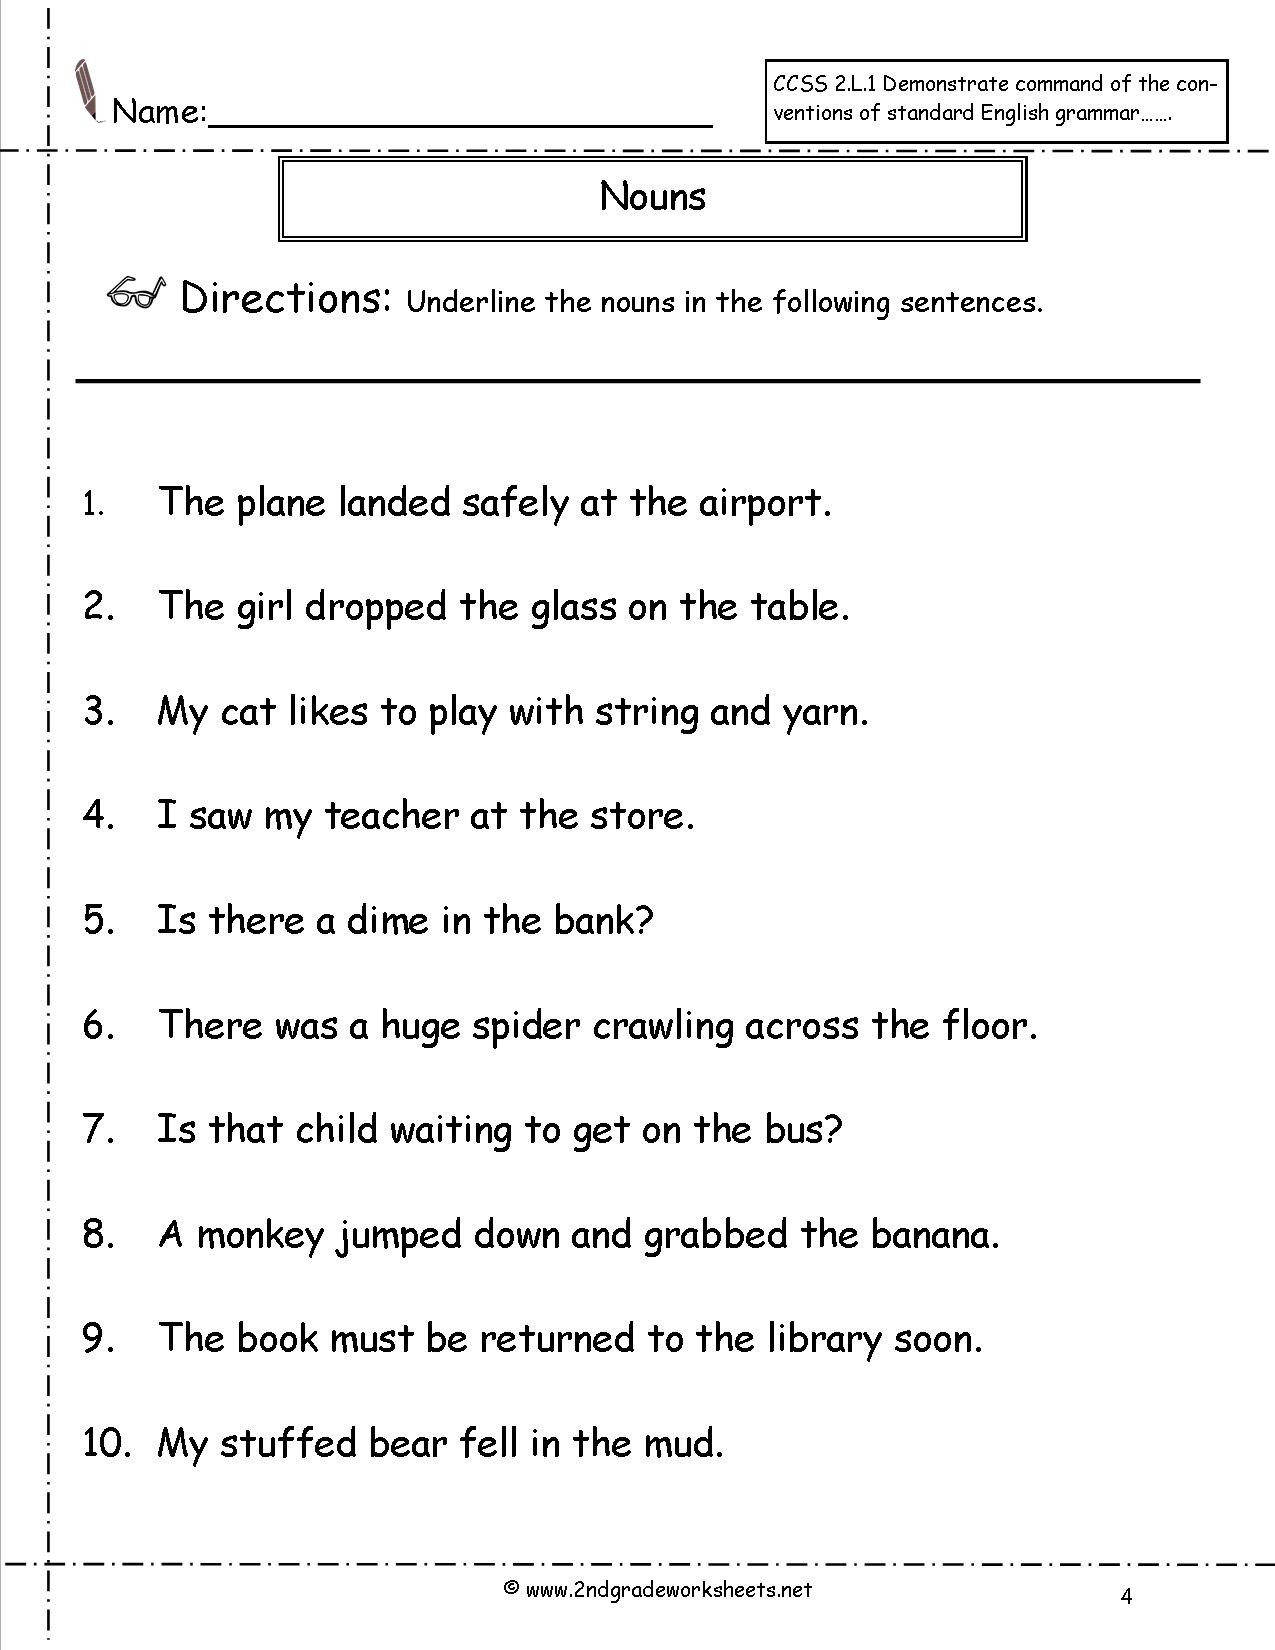 Pronoun Worksheets for 2nd Graders Nouns Worksheets and Printouts